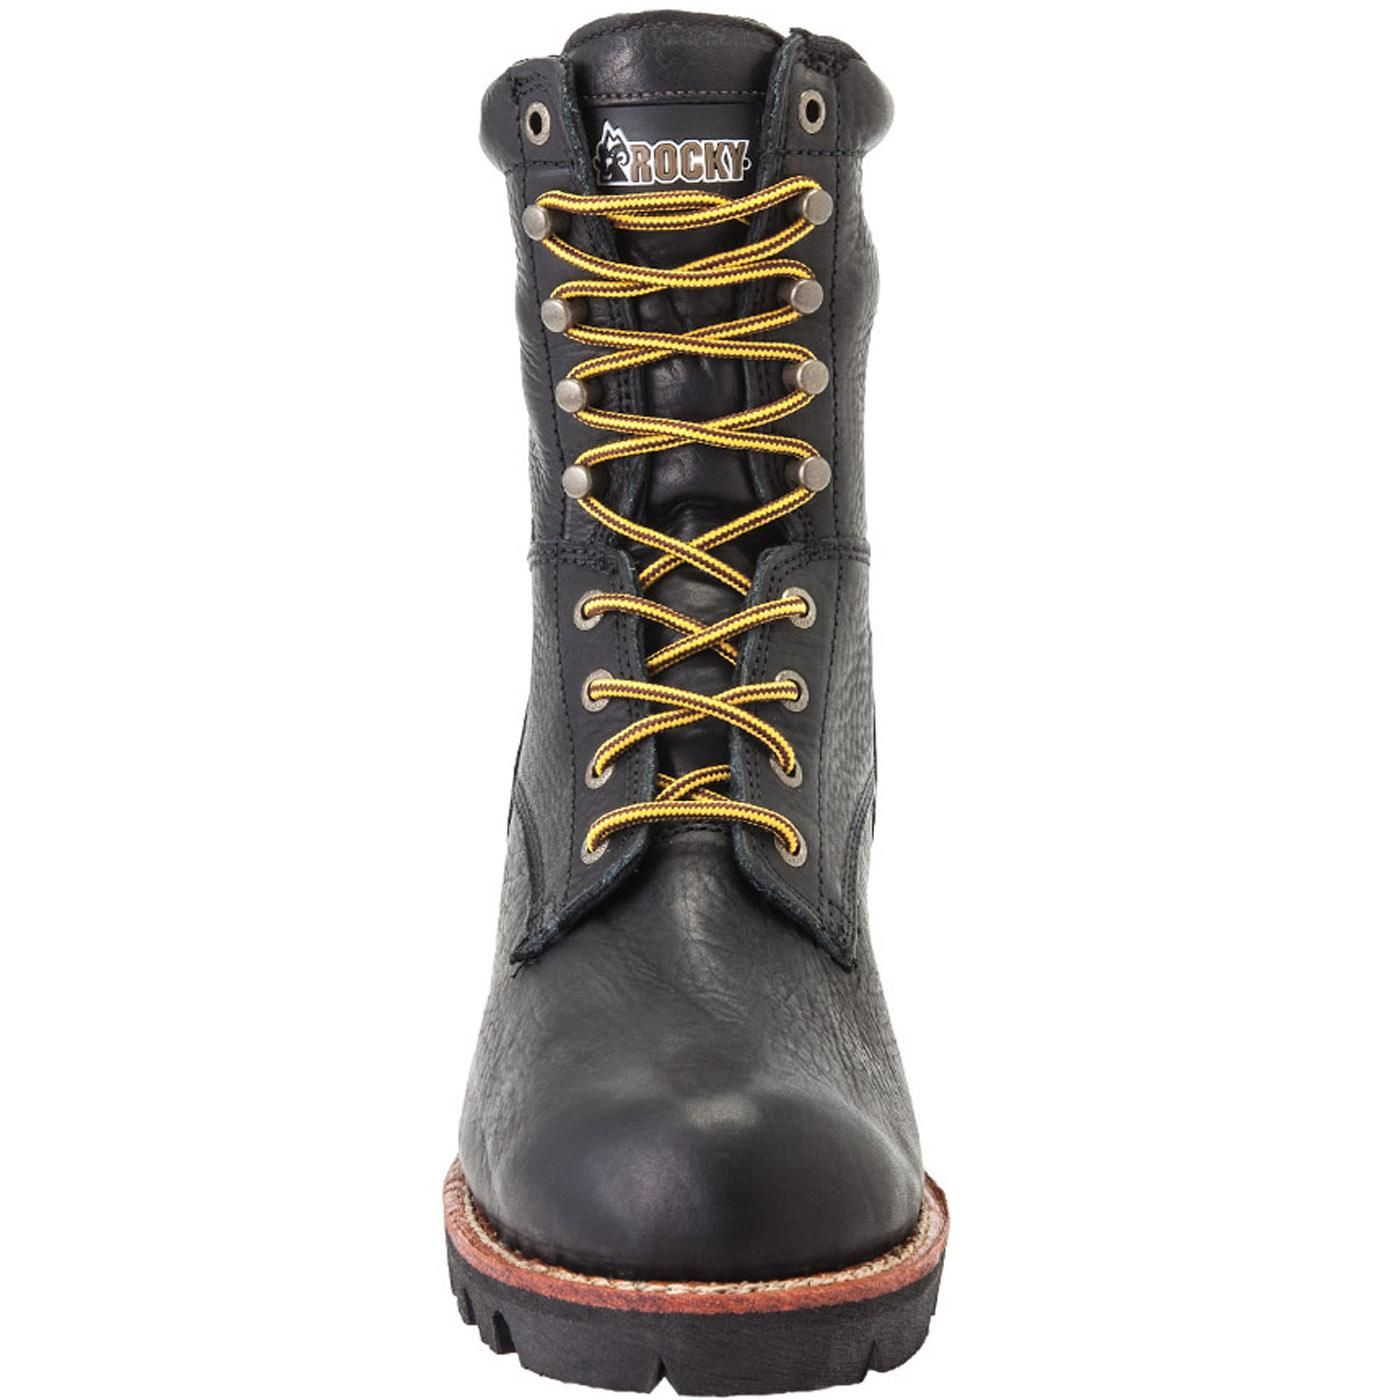 f4514131eca Rocky Great Oak GORE-TEX® Logger Work Boot | Boots and clothes ...